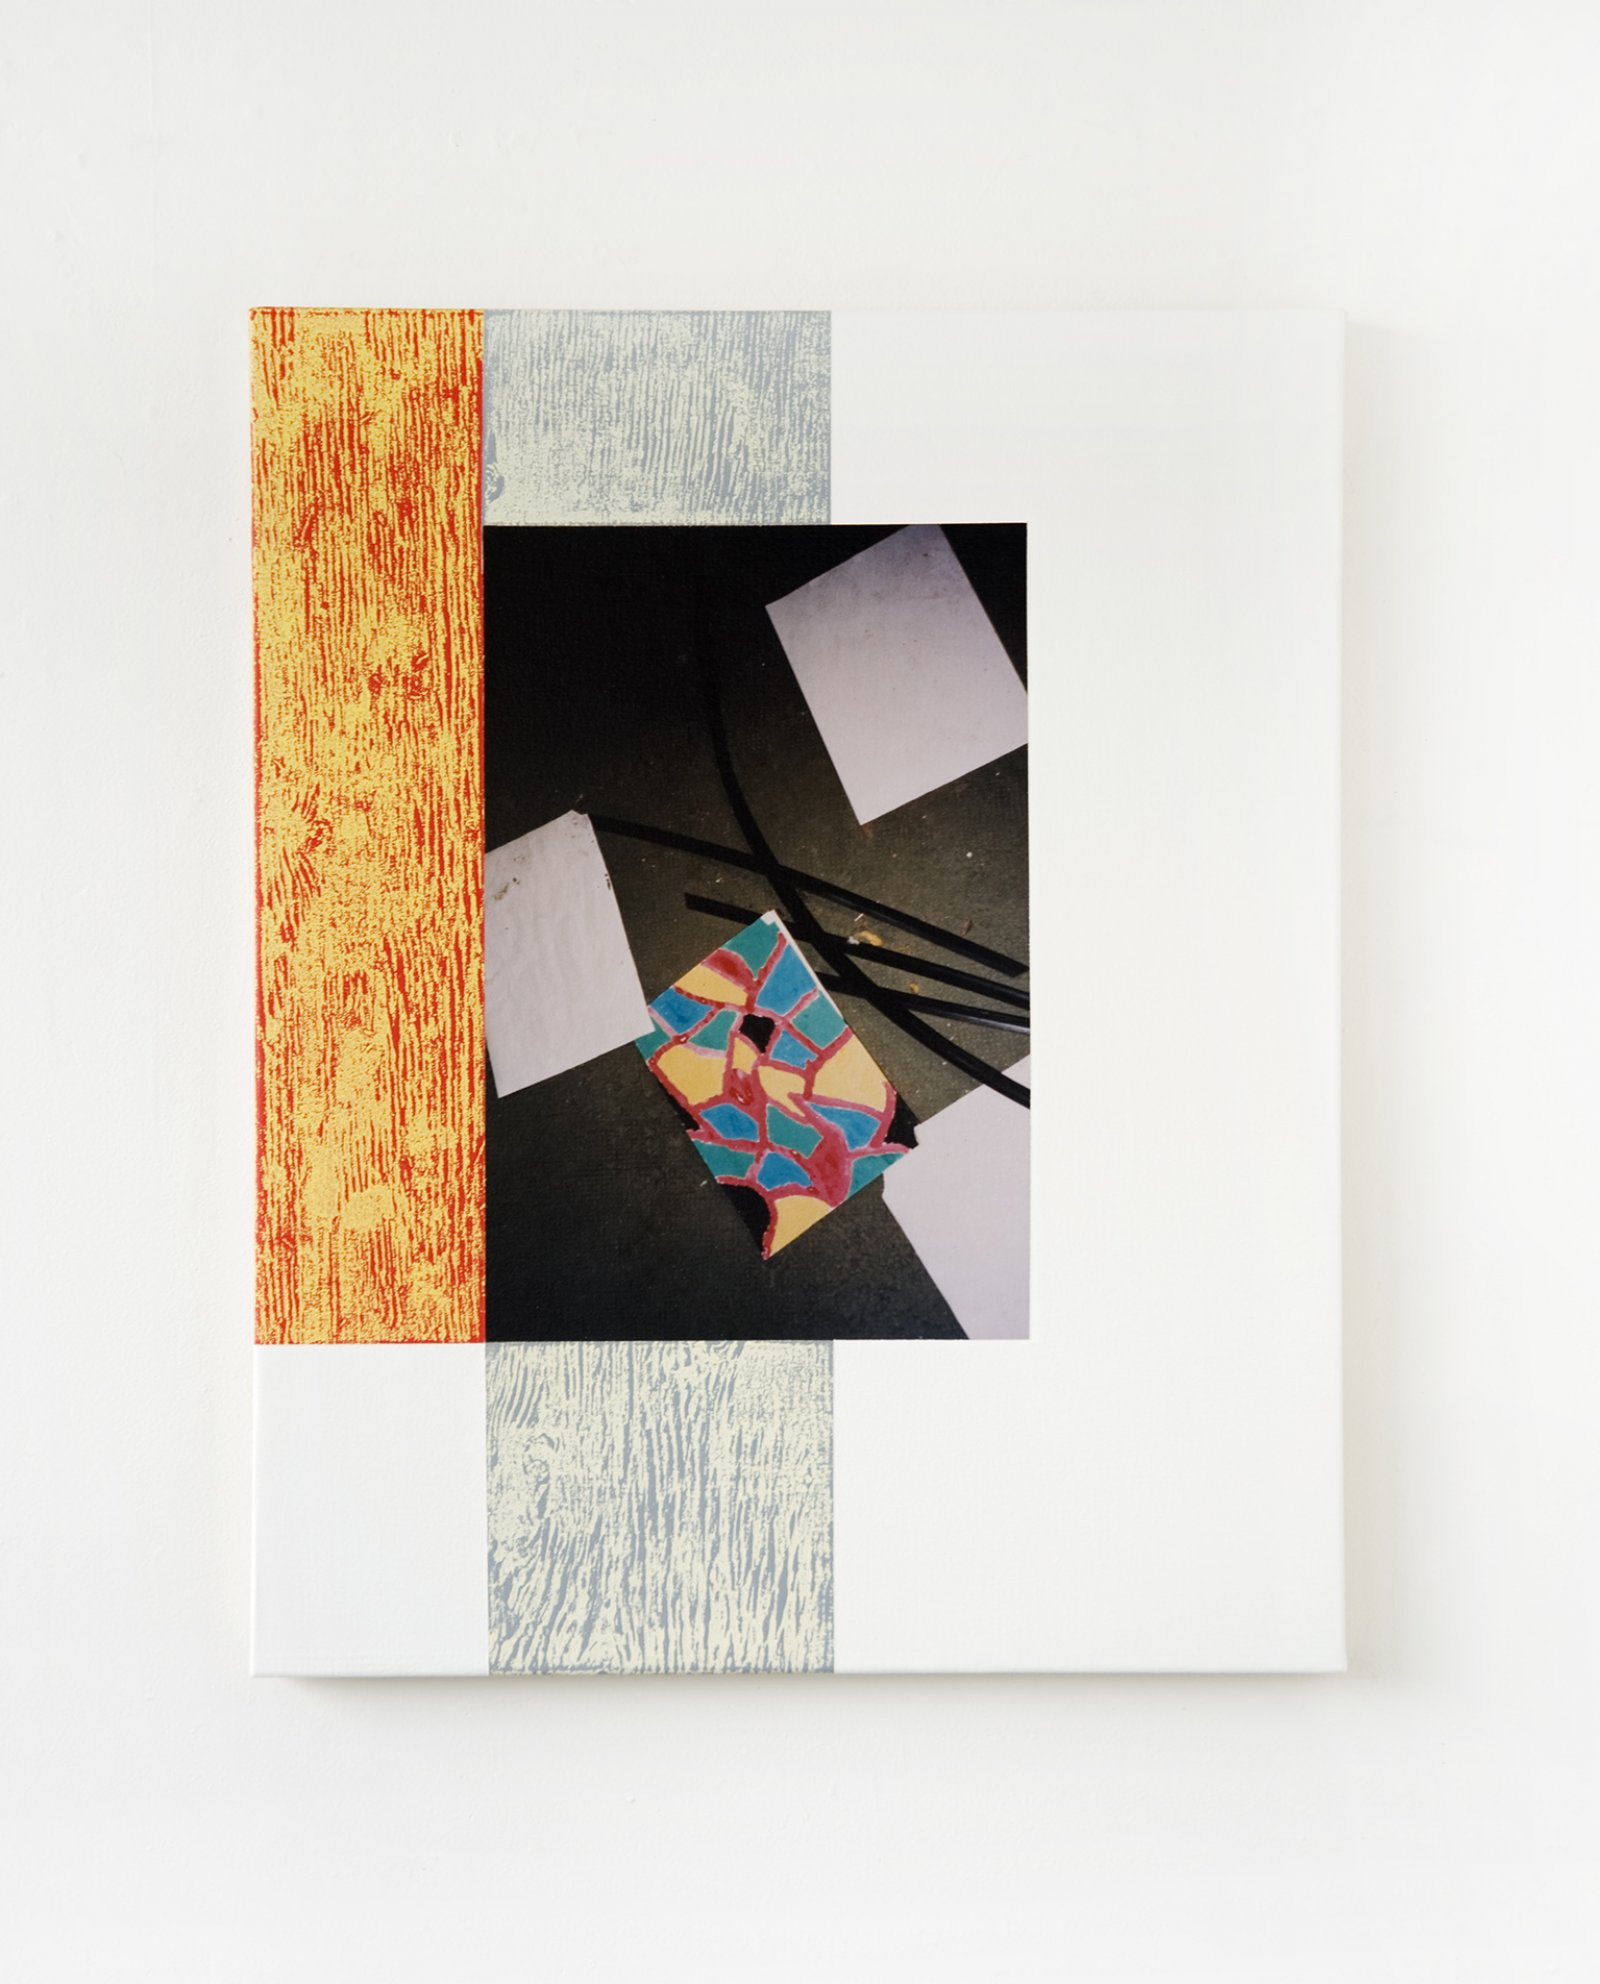 Ian Wallace,Abstract Art II, 1999, photolaminate with acrylic on canvas, 30 x 24 in. (76 x 61 cm)